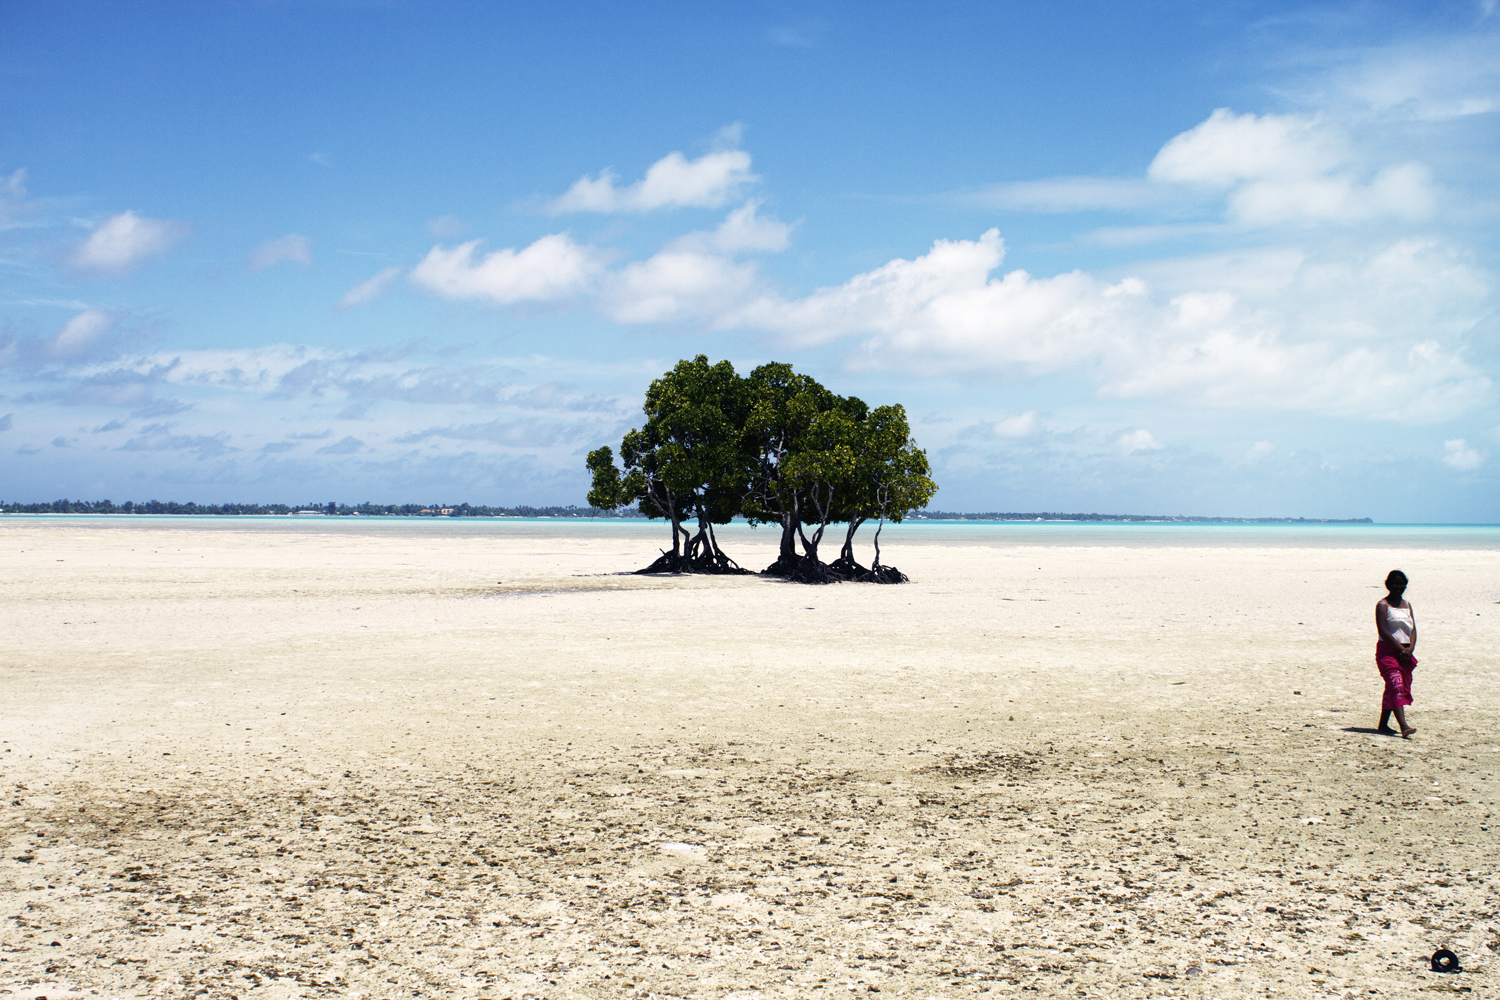 Mangrove tree in the village of Buota. The planting of the trees is a strategy by the government to try to hold the soil in place. Kiribati, Tarawa. 2010.